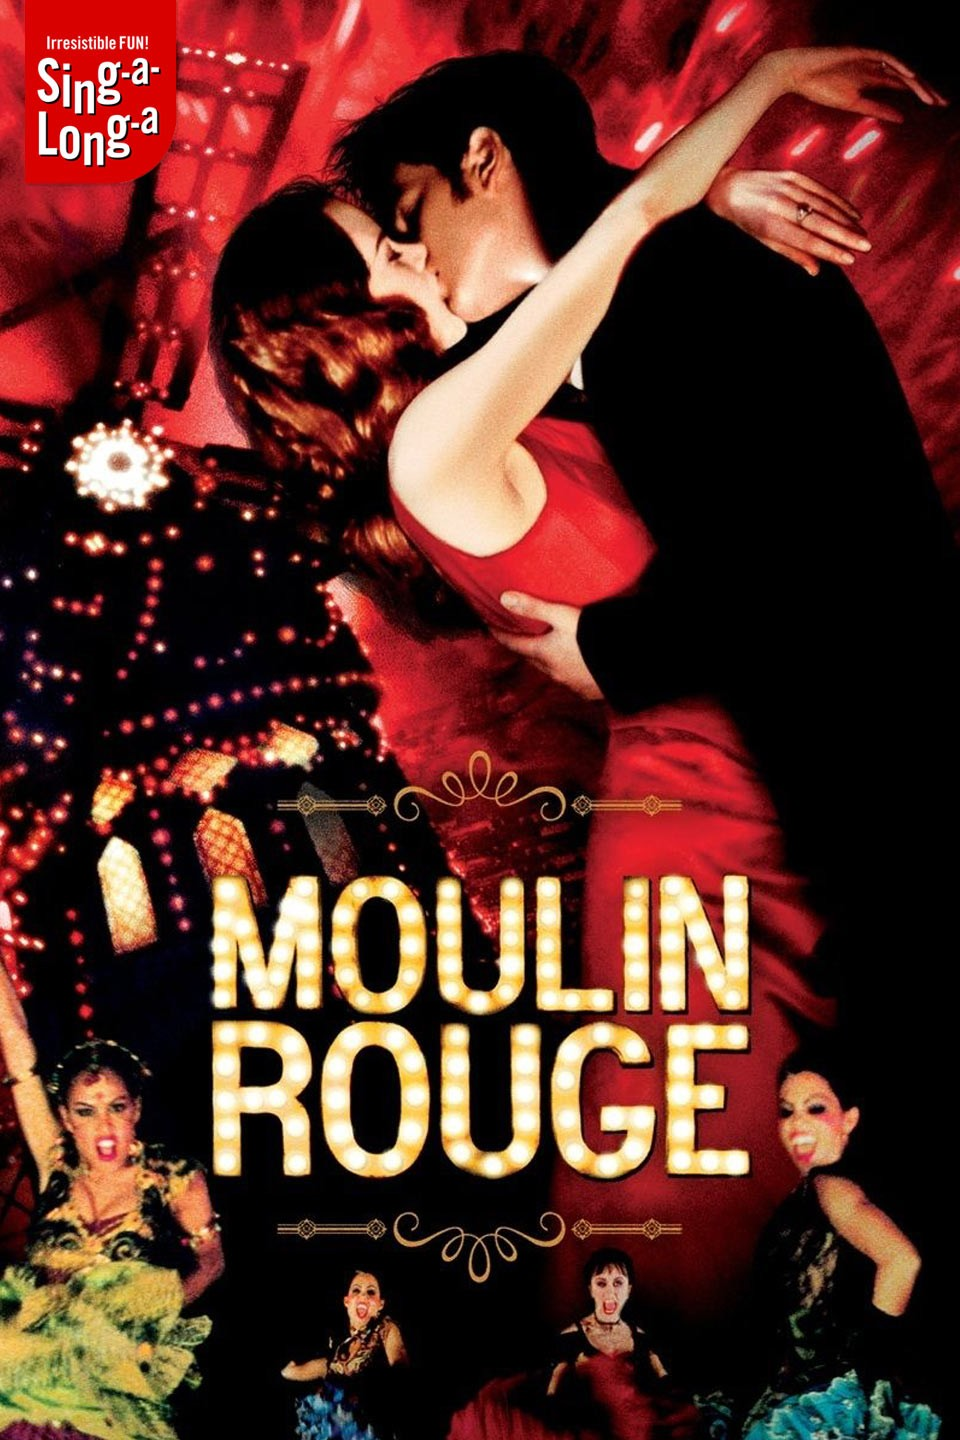 Sing-A-Long-A MOULIN ROUGE